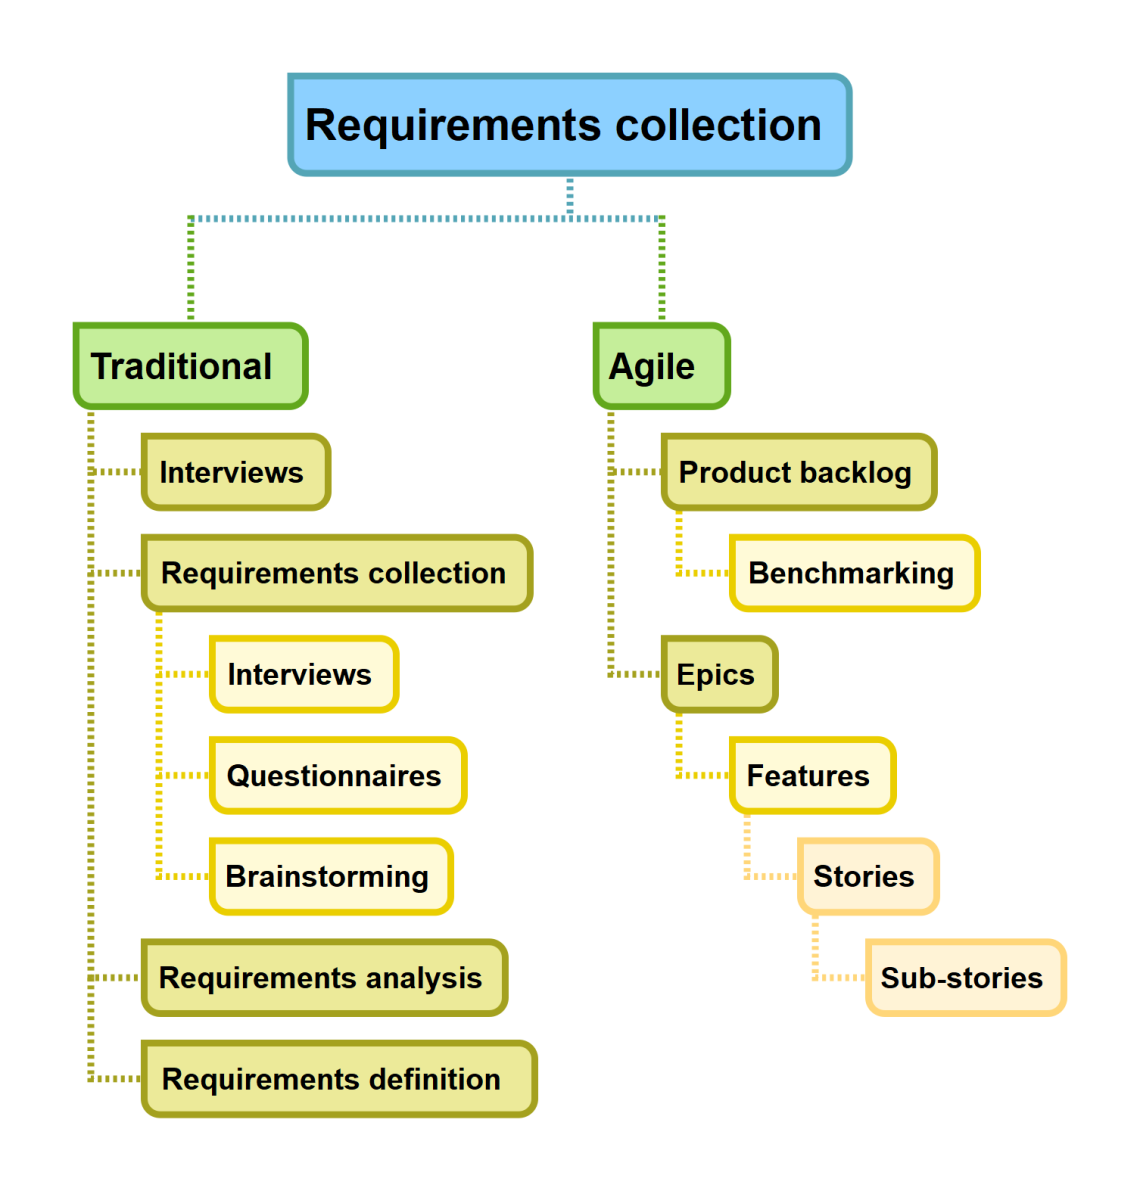 Requirements collection